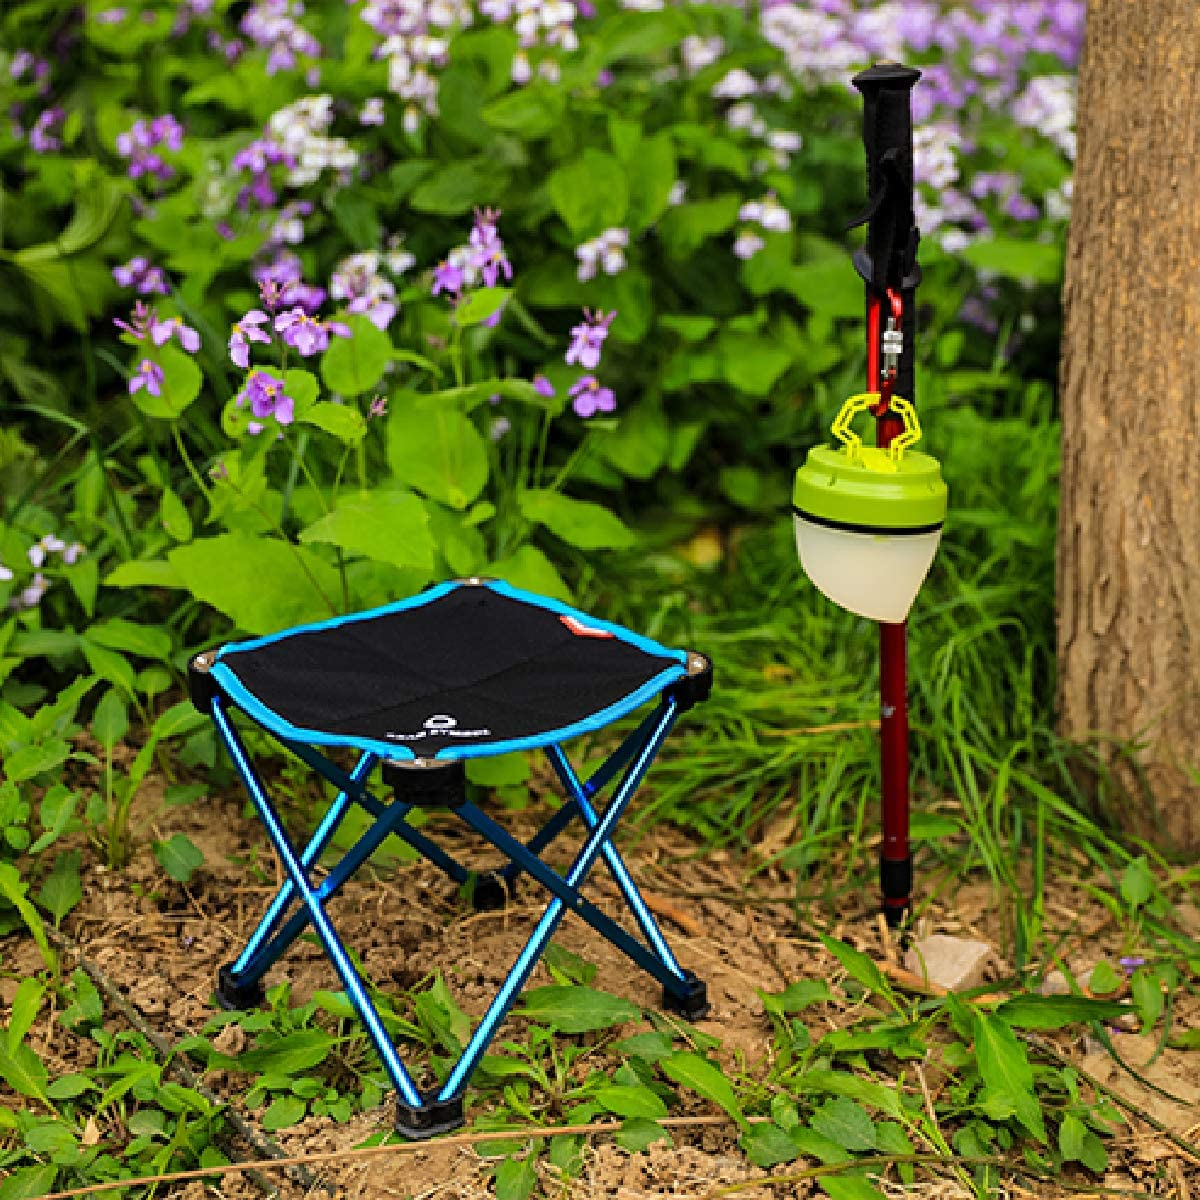 TRIWONDER Portable Camping Stool Outdoor Folding Chair Slacker Chair for Camping Backpacking Hiking Fishing Travel Garden BBQ with Carrying Sack